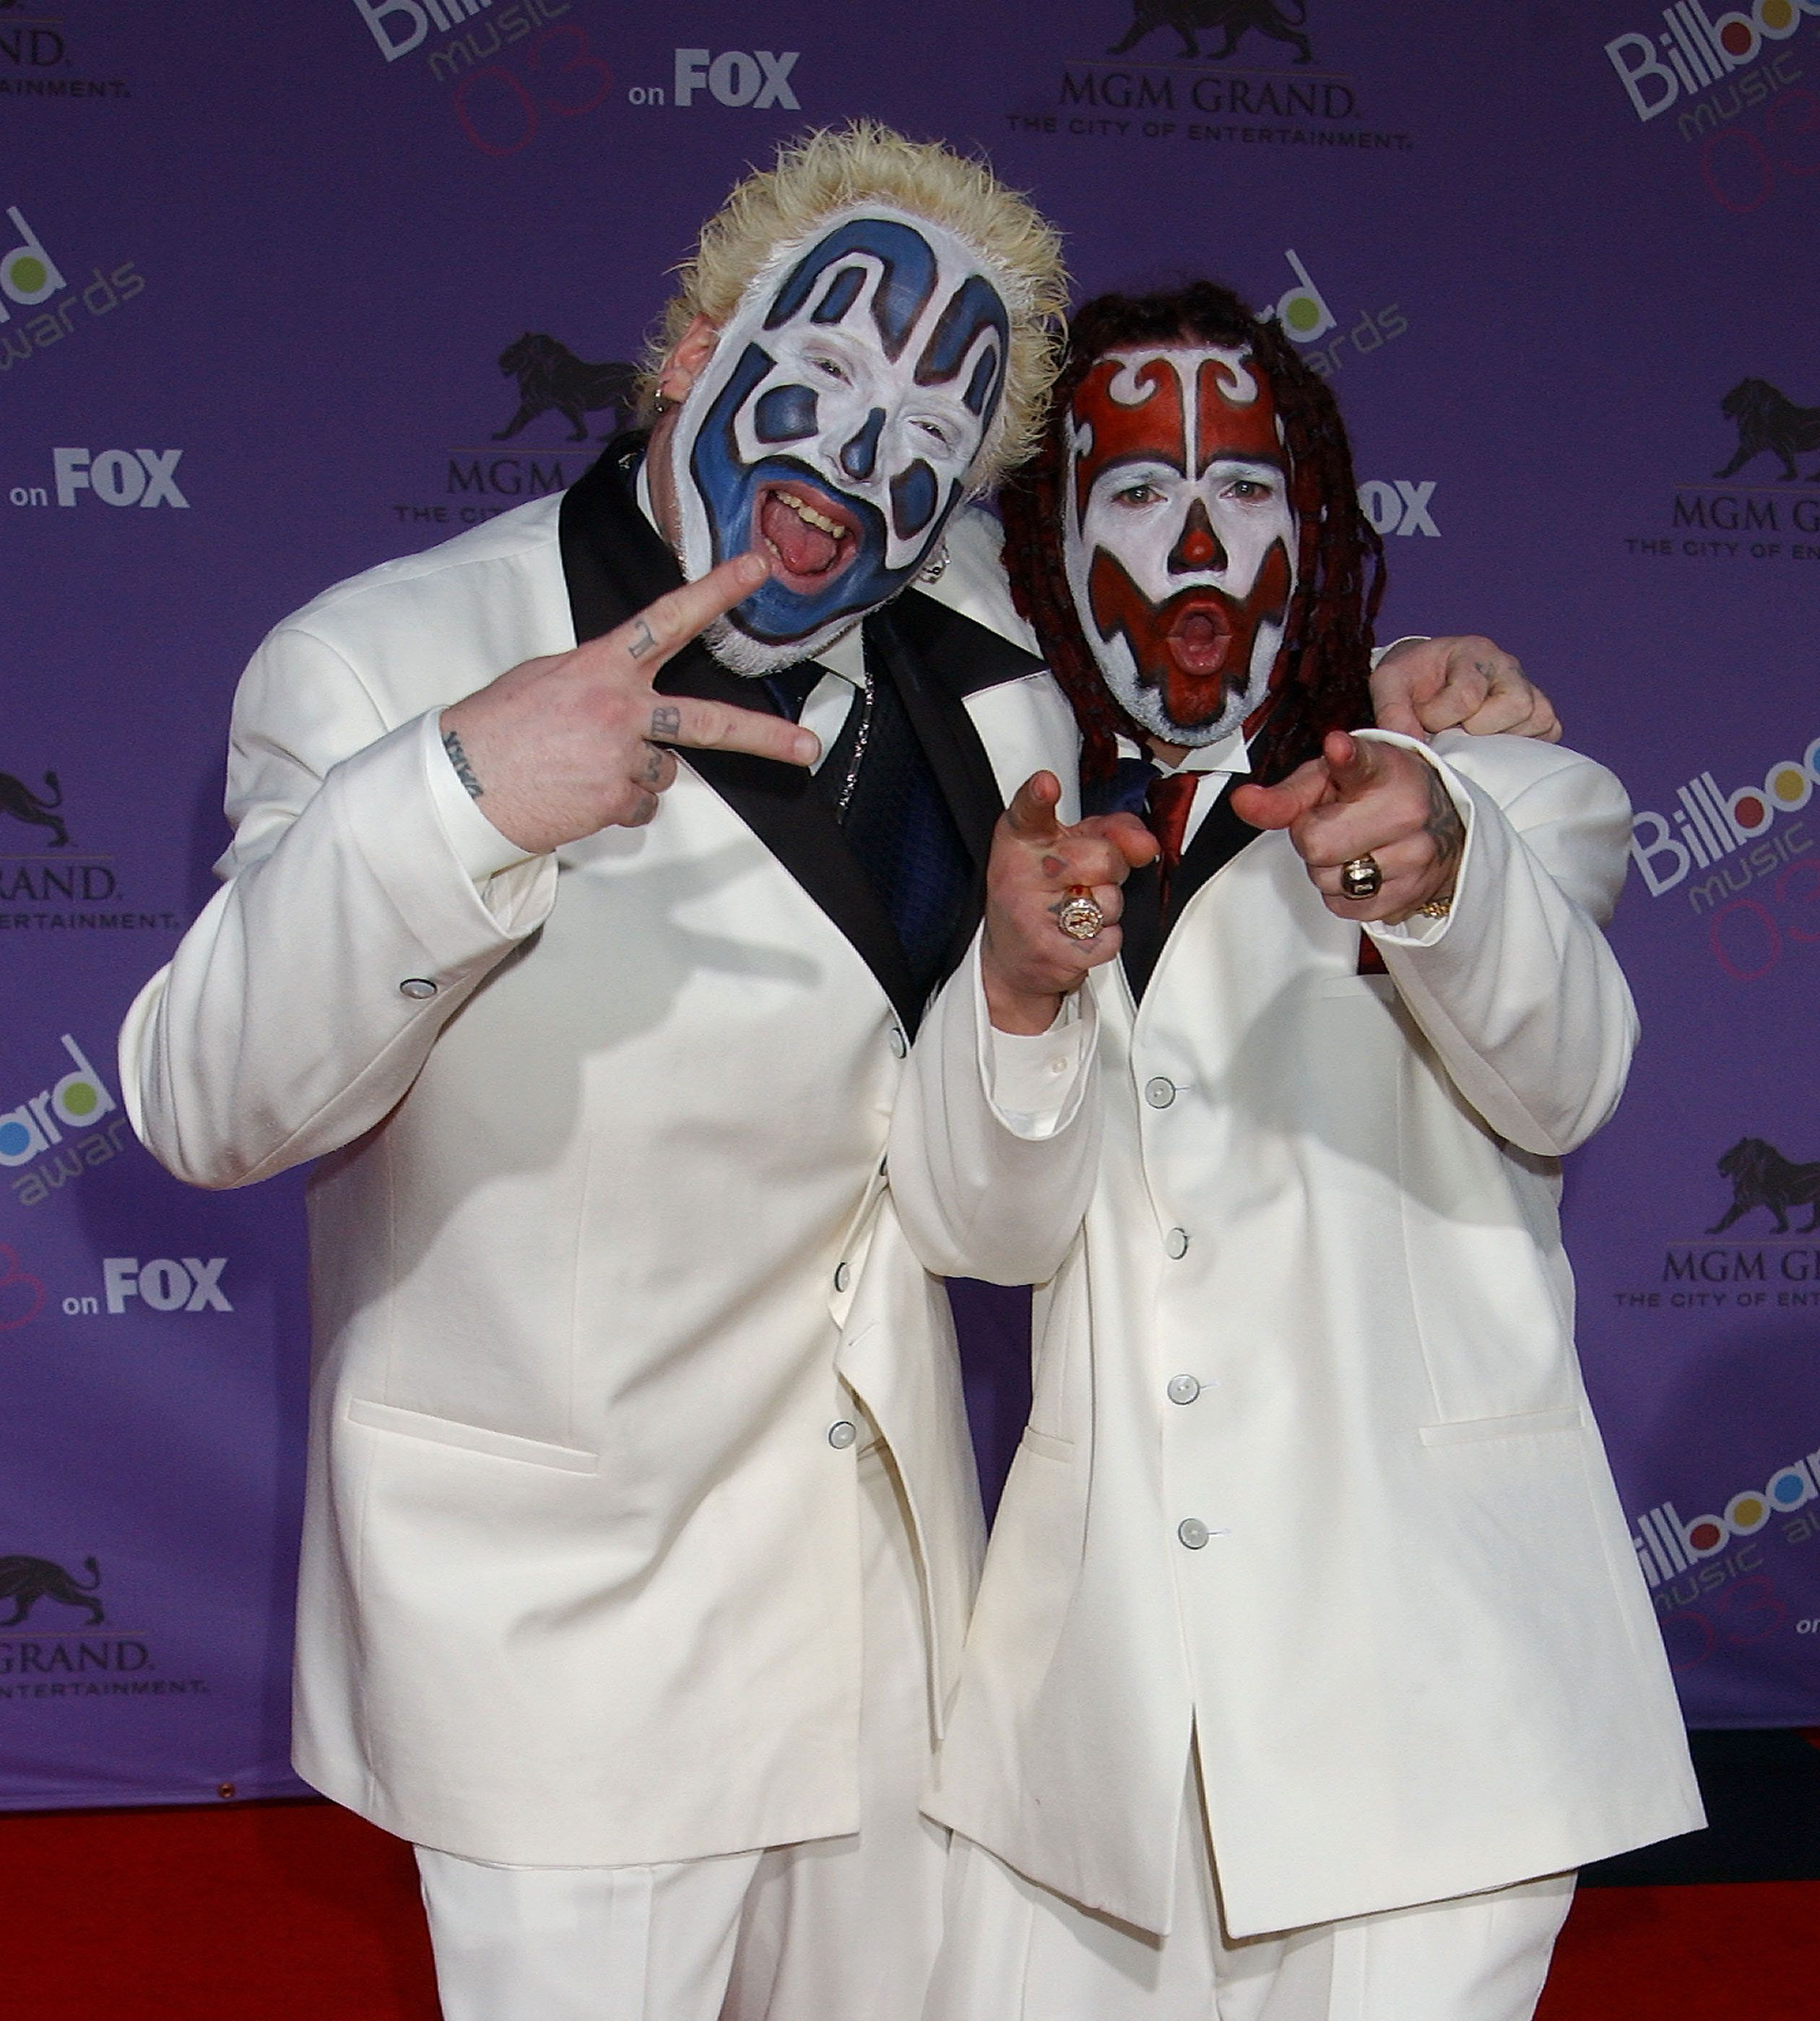 Insane Clown Posse at the MGM Grand in Las Vegas, Nevada (Photo by Gregg DeGuire/WireImage)